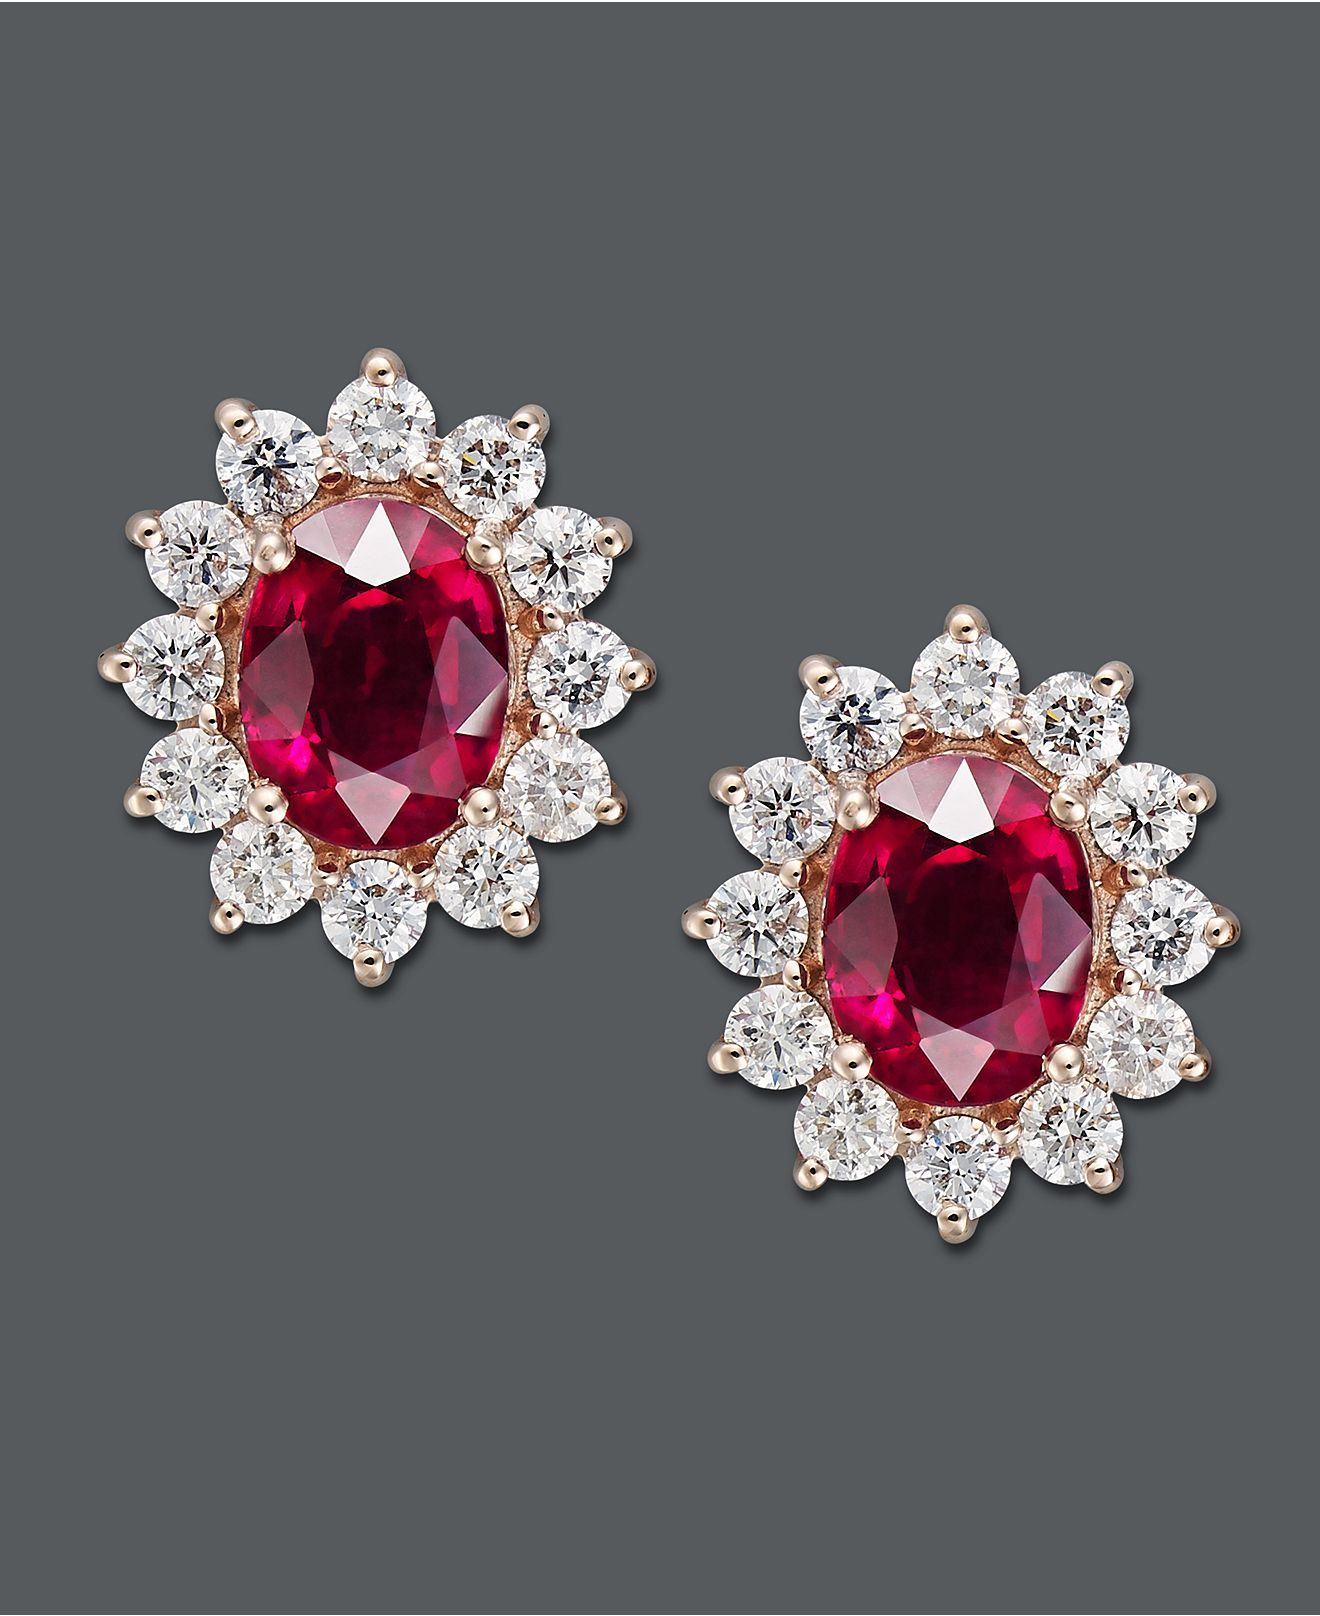 b2e77e6d8 Effy Collection 14k Gold Earrings, Ruby and Diamond Oval Stud Earrings